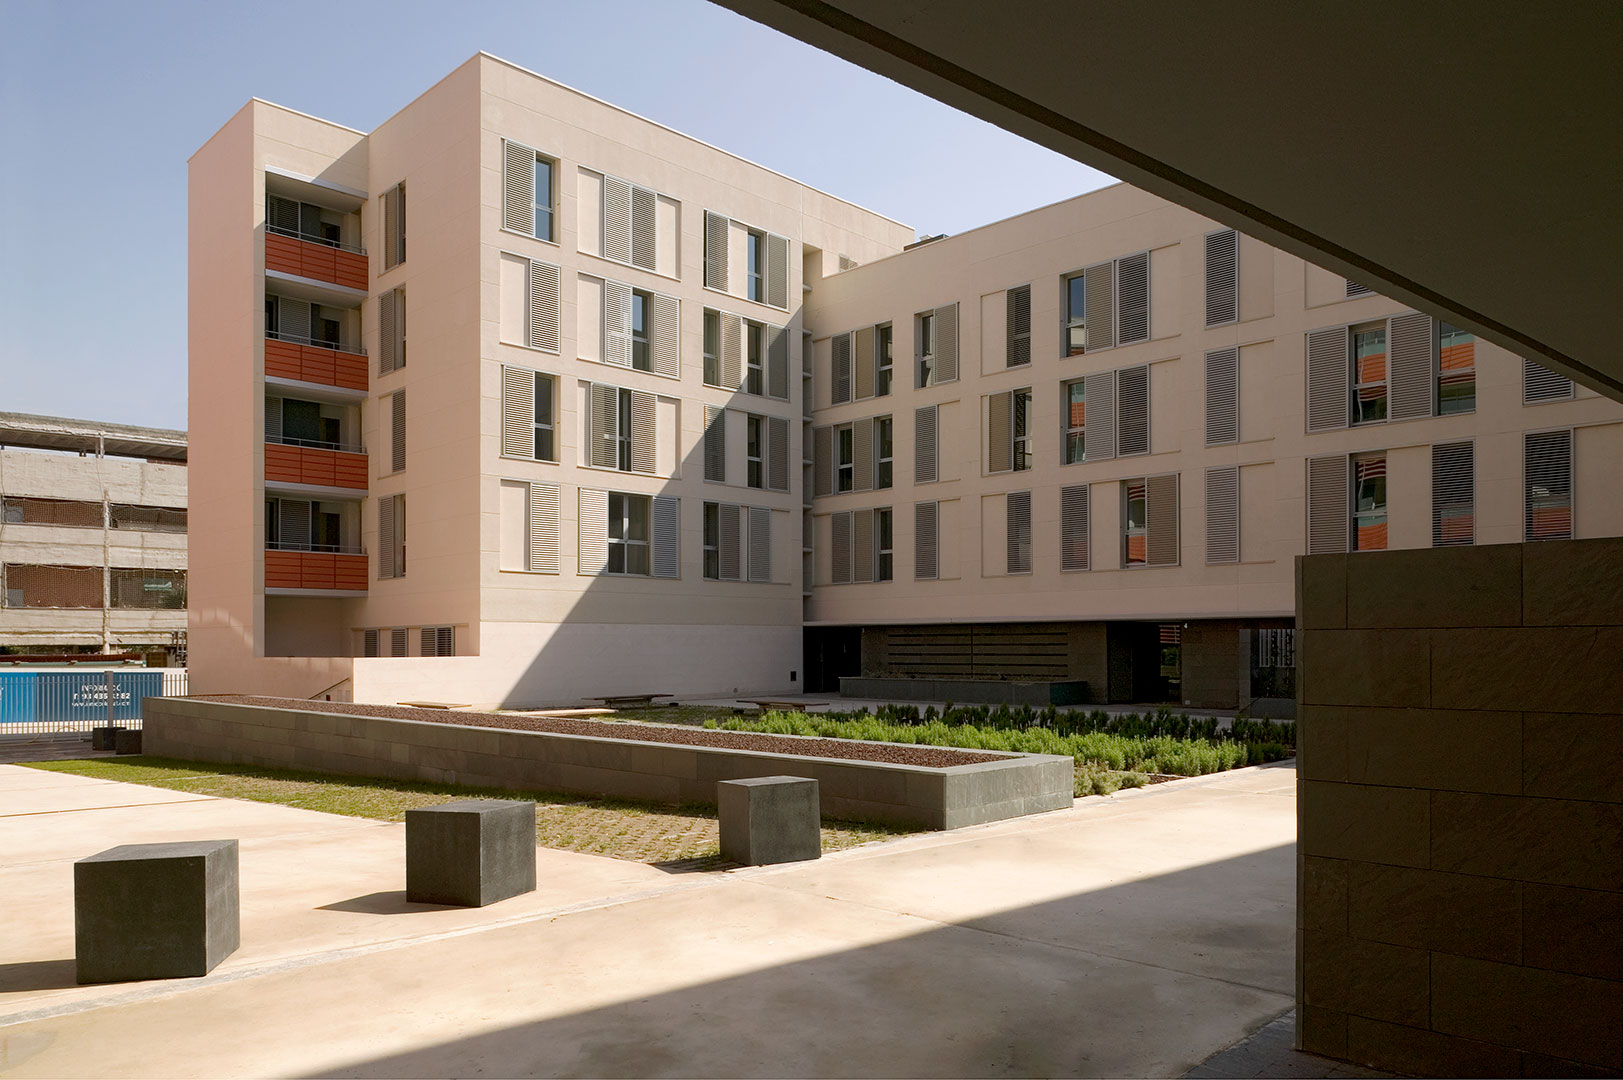 Uriach - Housing and public space